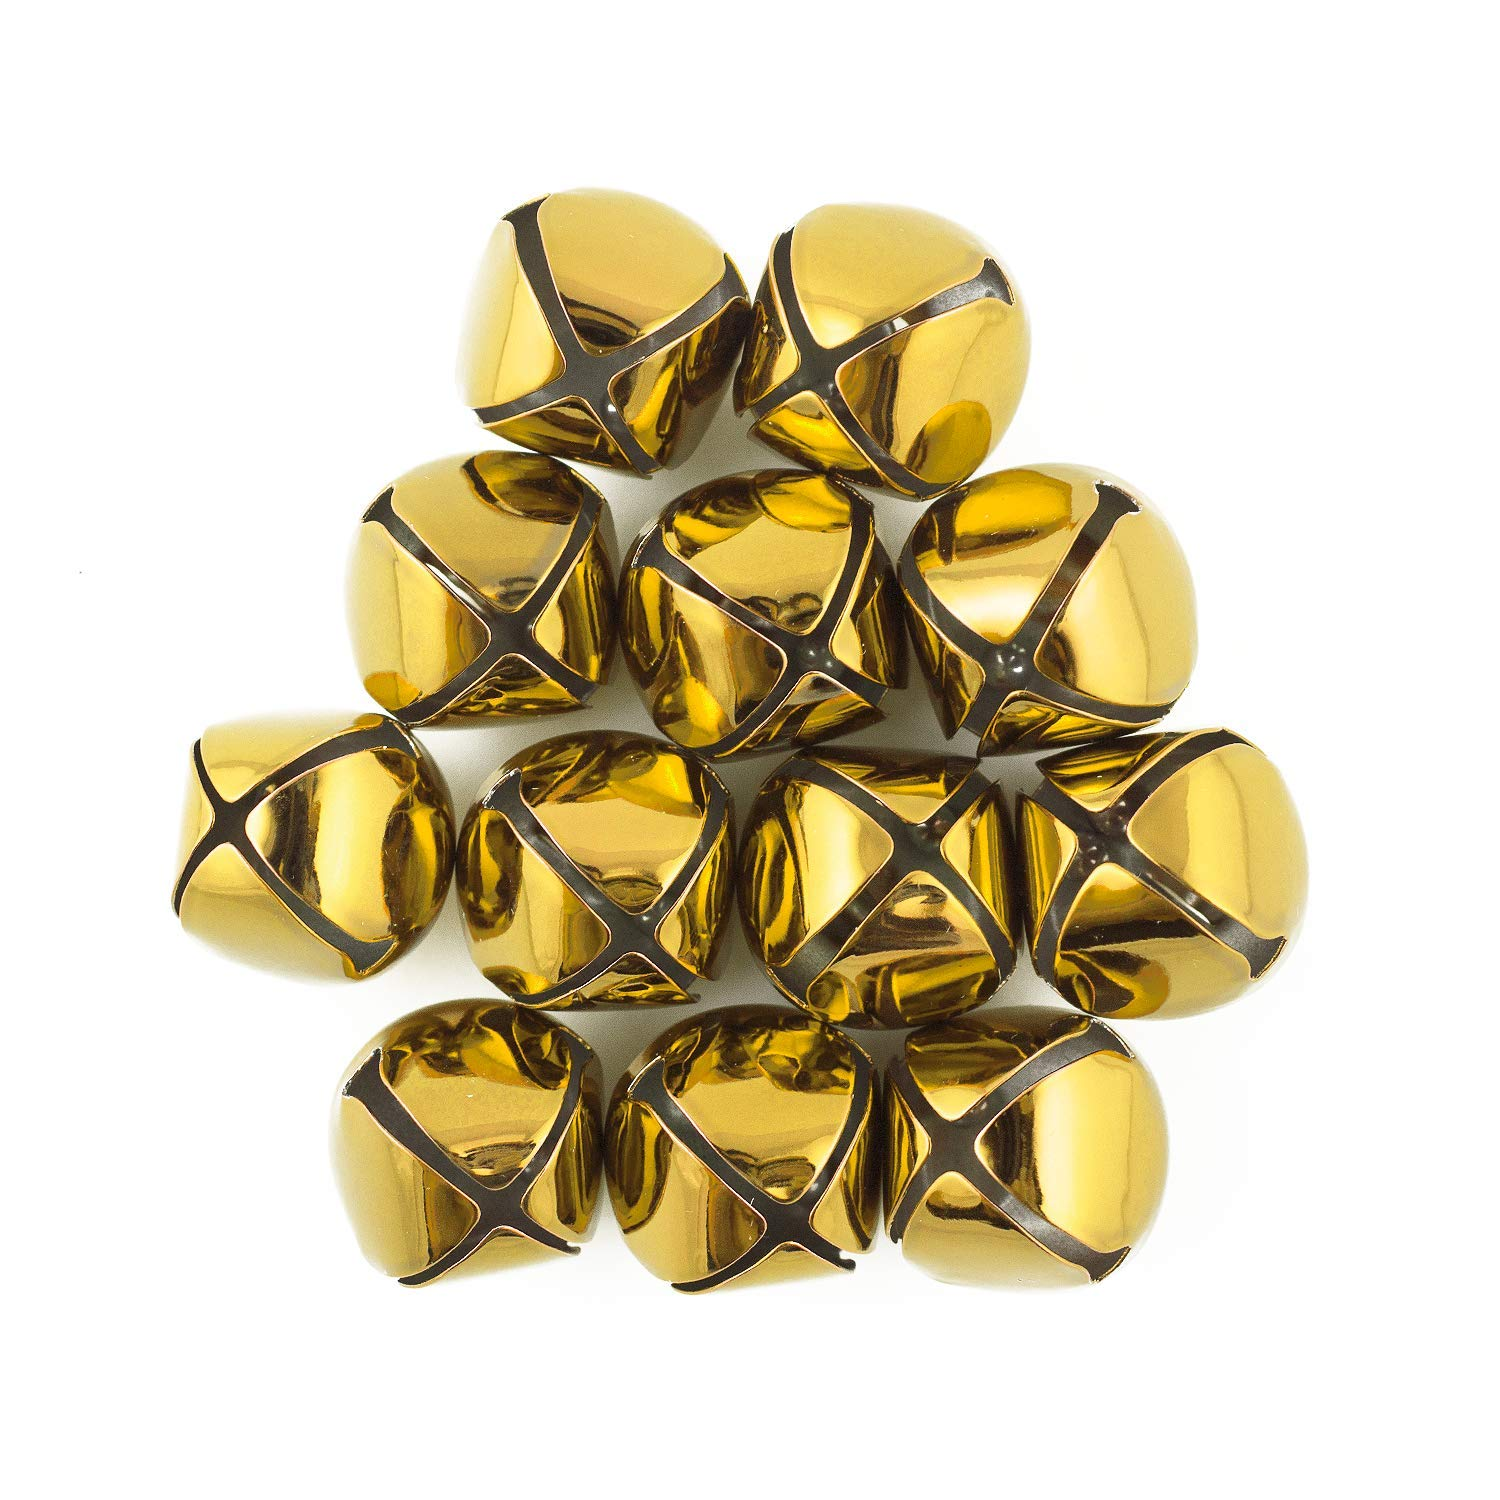 1.25 inch 30mm Large Gold Jingle Bells Bulk 100 Pieces by Art Cove (Image #1)